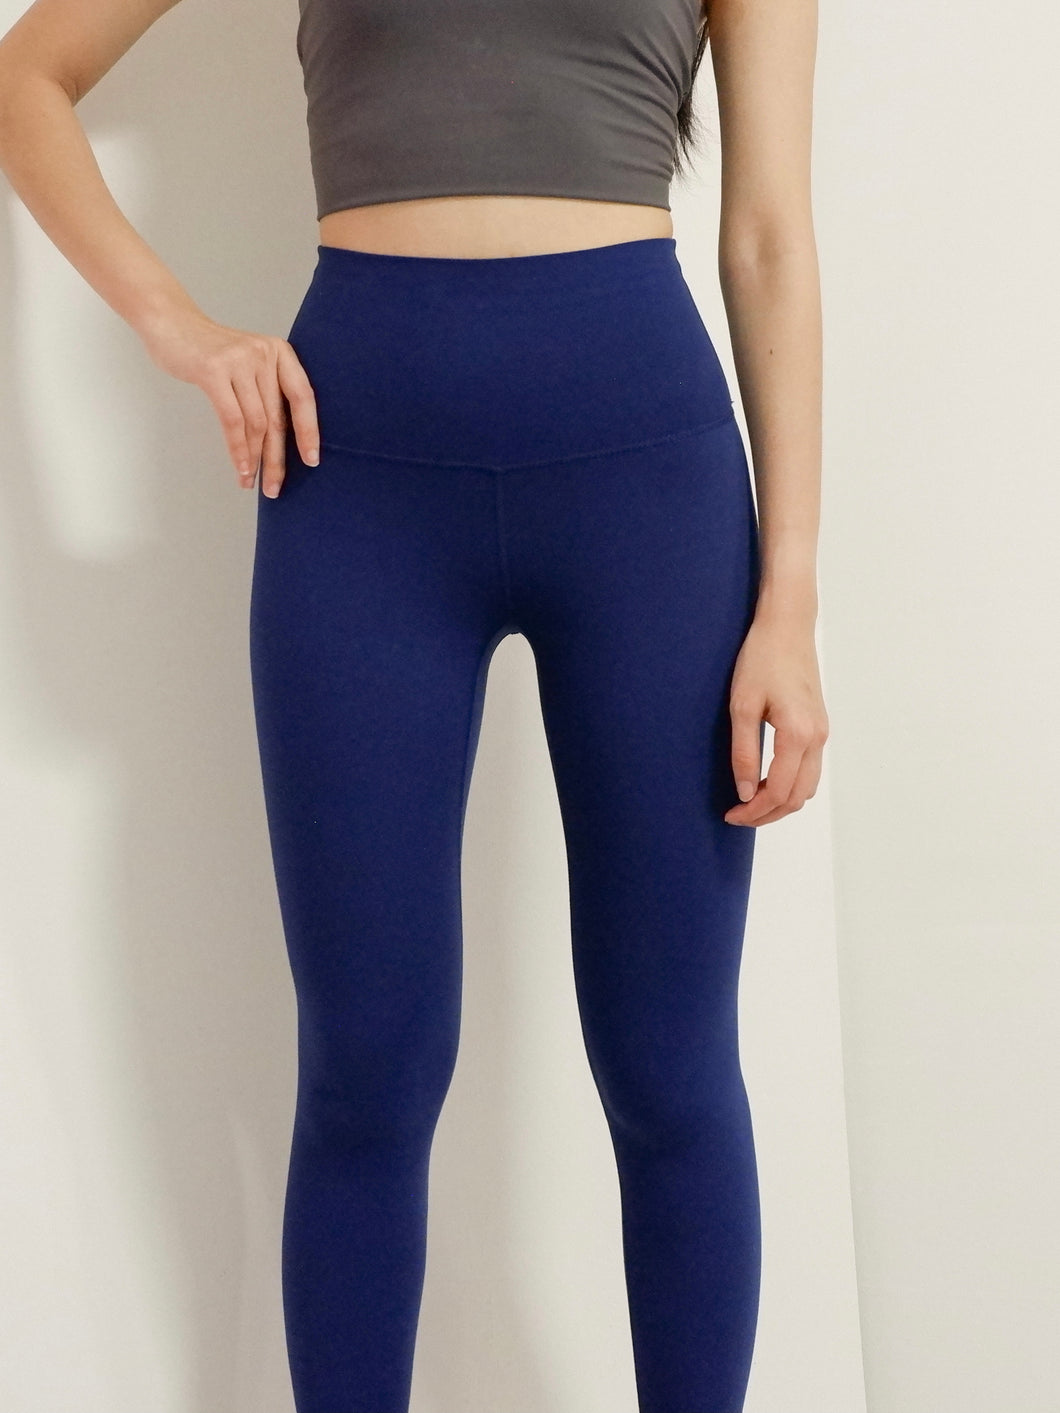 Skinless Sport Legging in Persian Blue